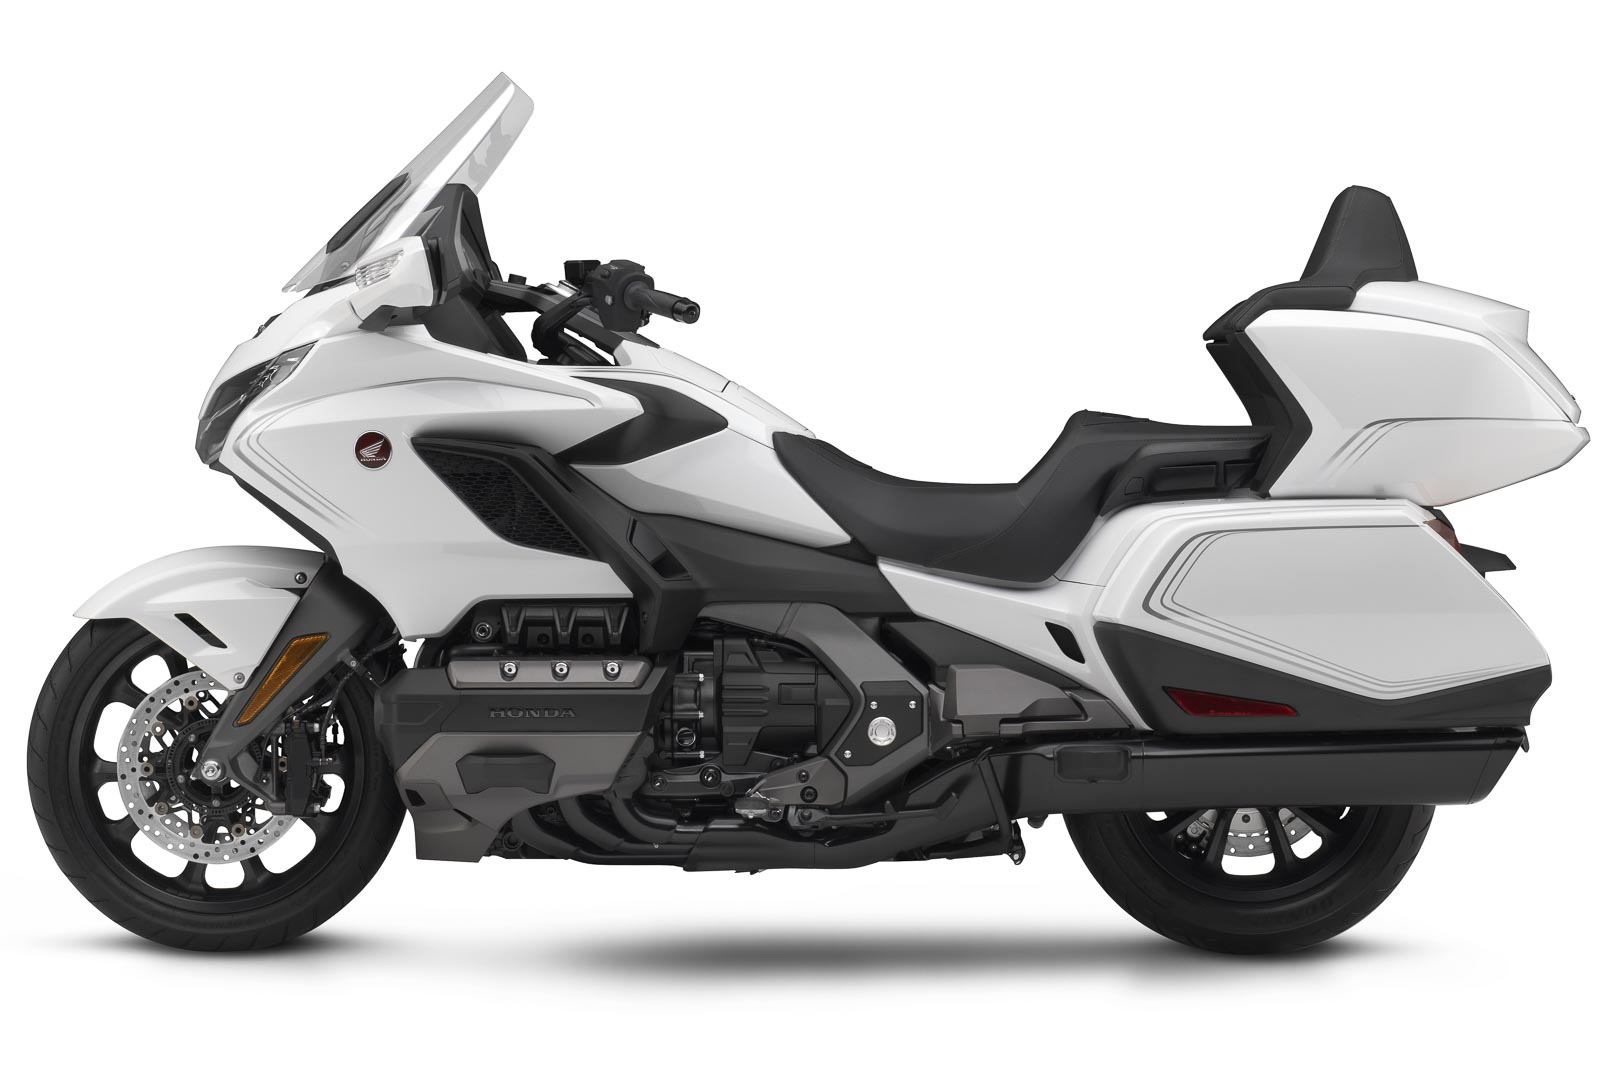 2020 Honda Gold Wing Lineup First Look (7 Fast Facts)